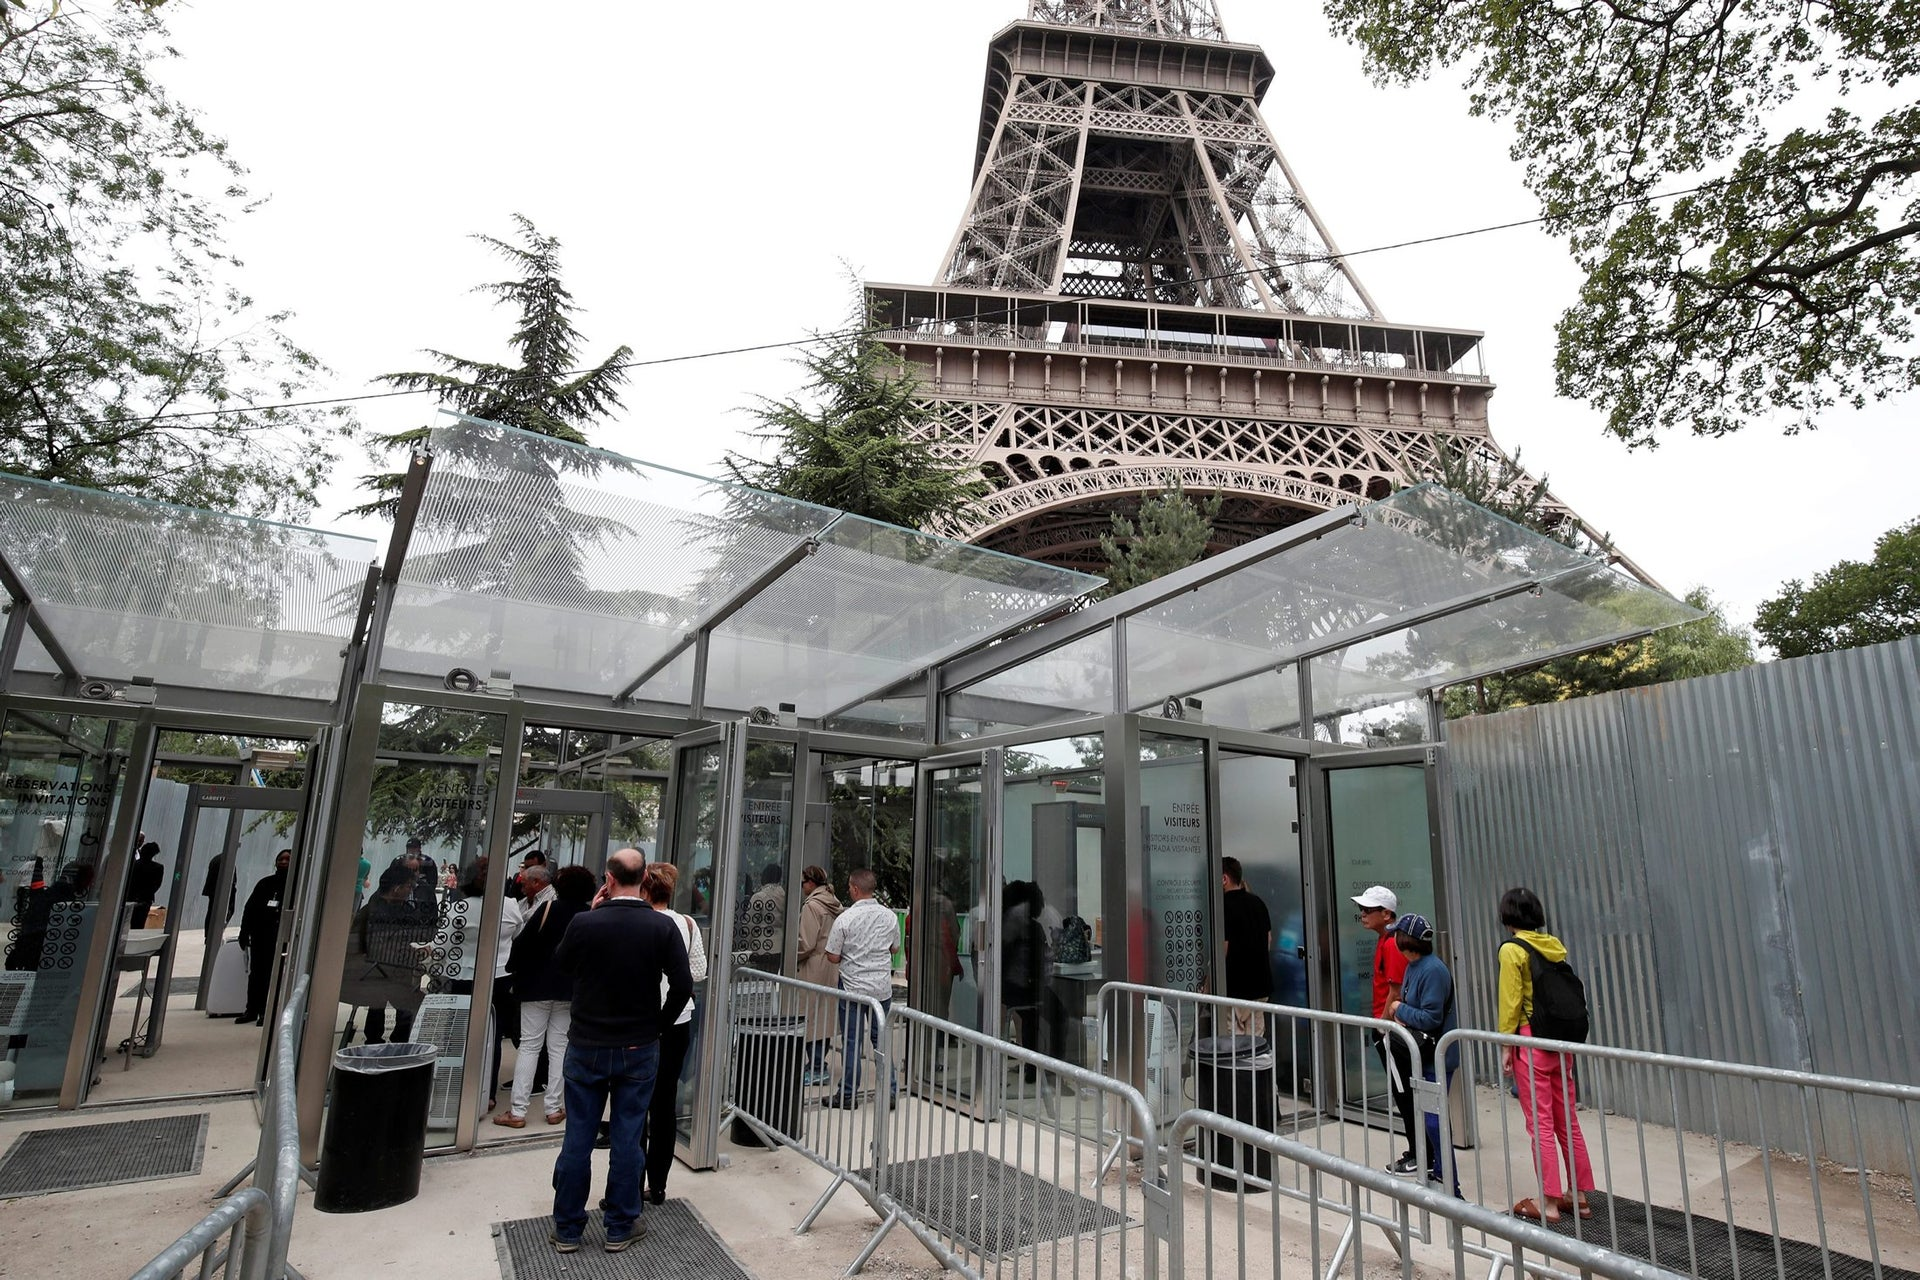 Tourists and visitors queue to pass the security check at the entrance to the new glass fence around the Eiffel Tower in Paris, France, June 14, 2018.